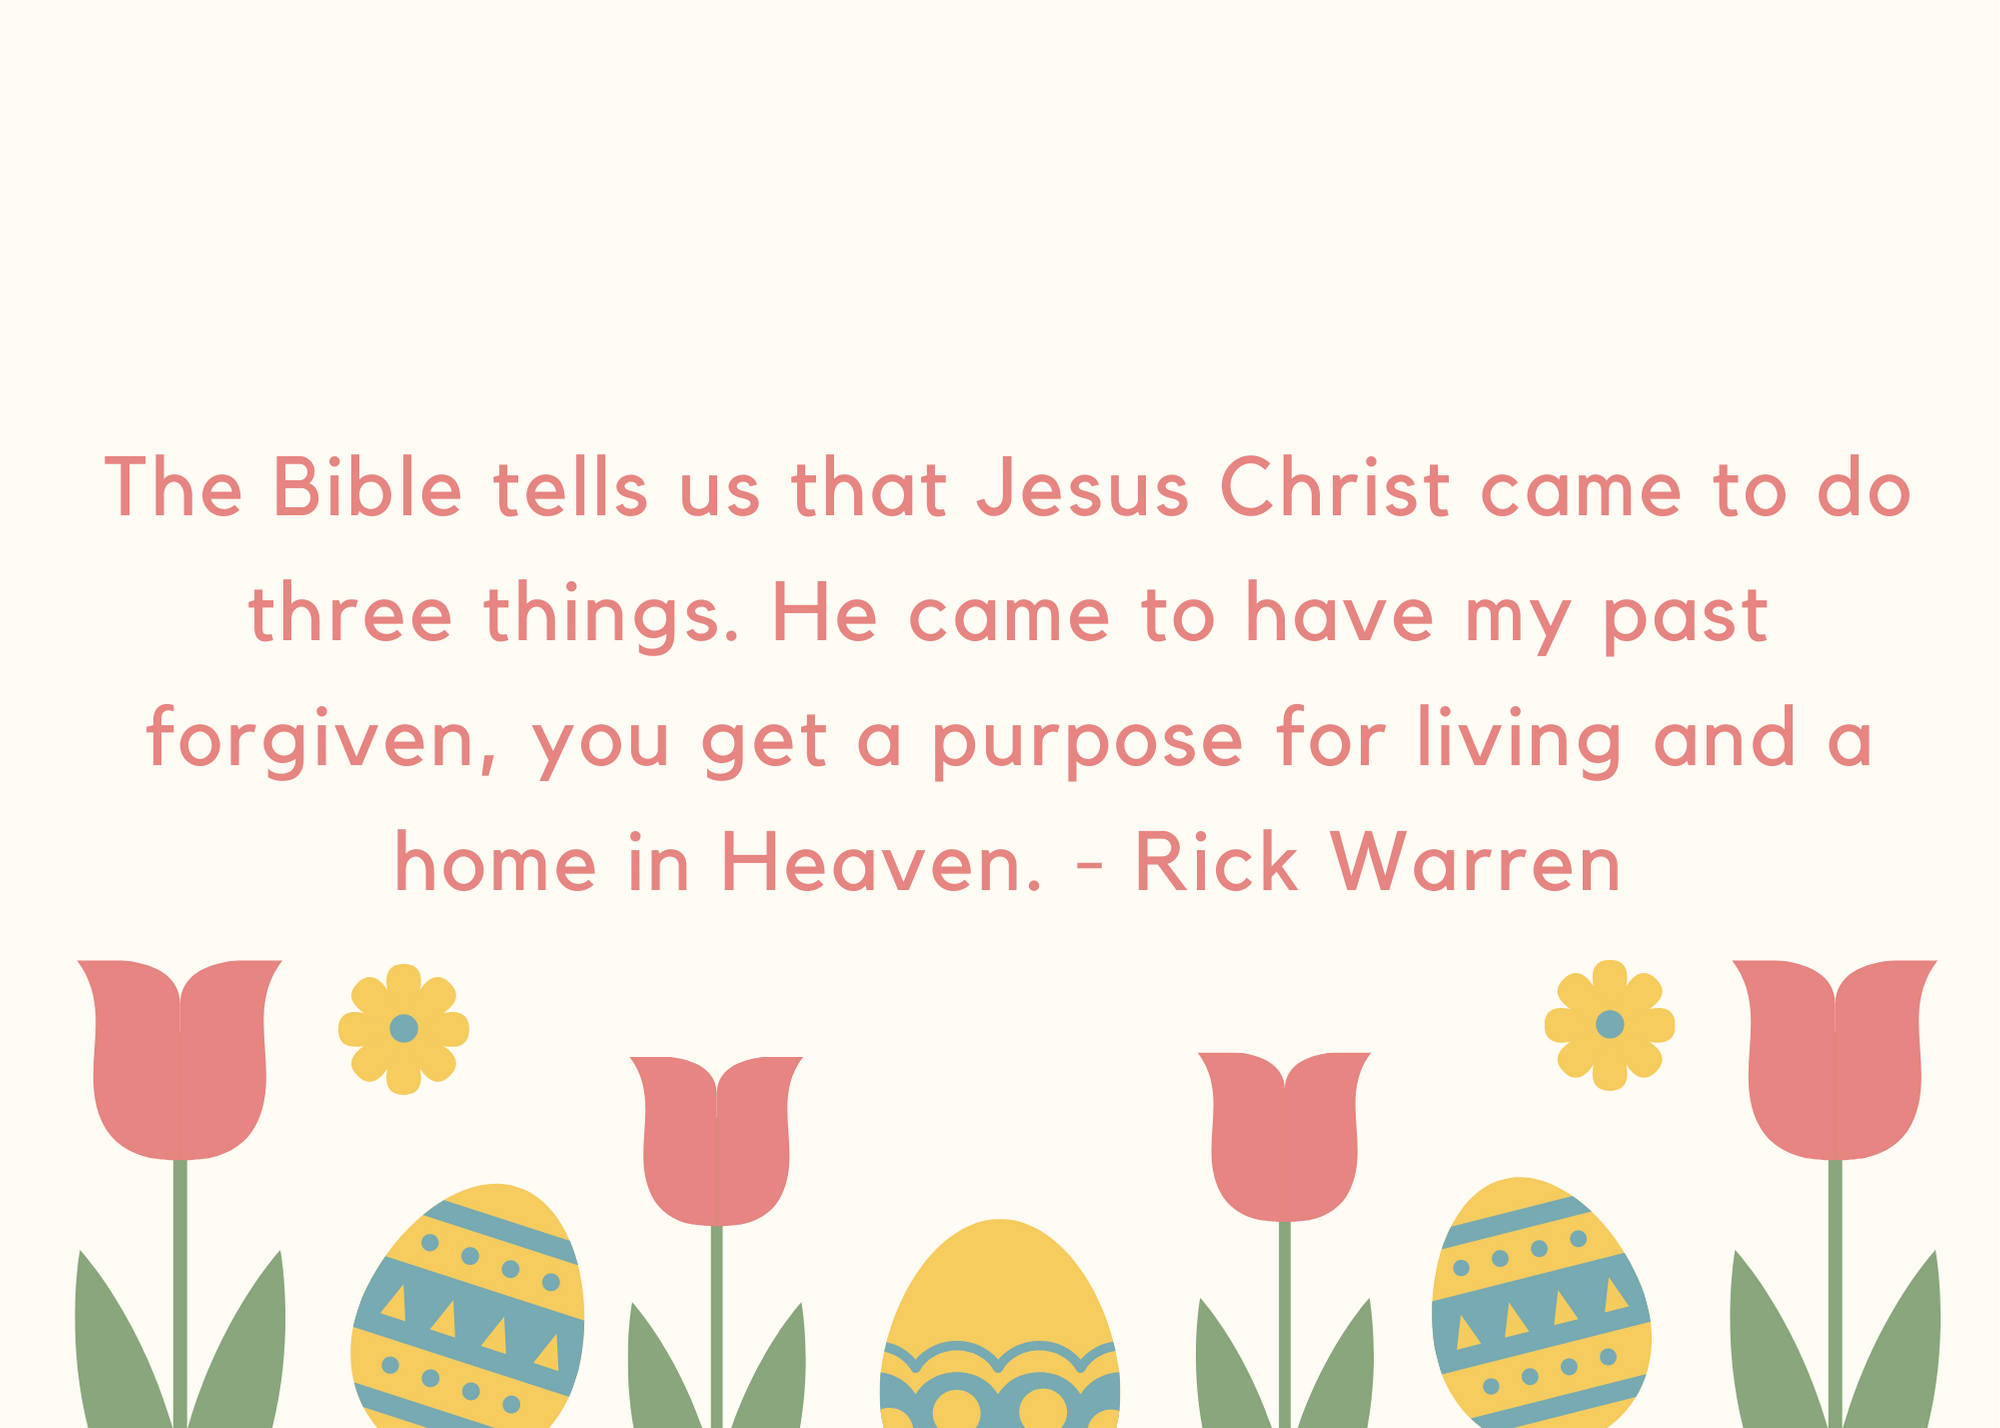 The Bible tells us that Jesus Christ came to do three things. He came to have my past forgiven, you get a purpose for living and a home in Heaven. - Rick Warren